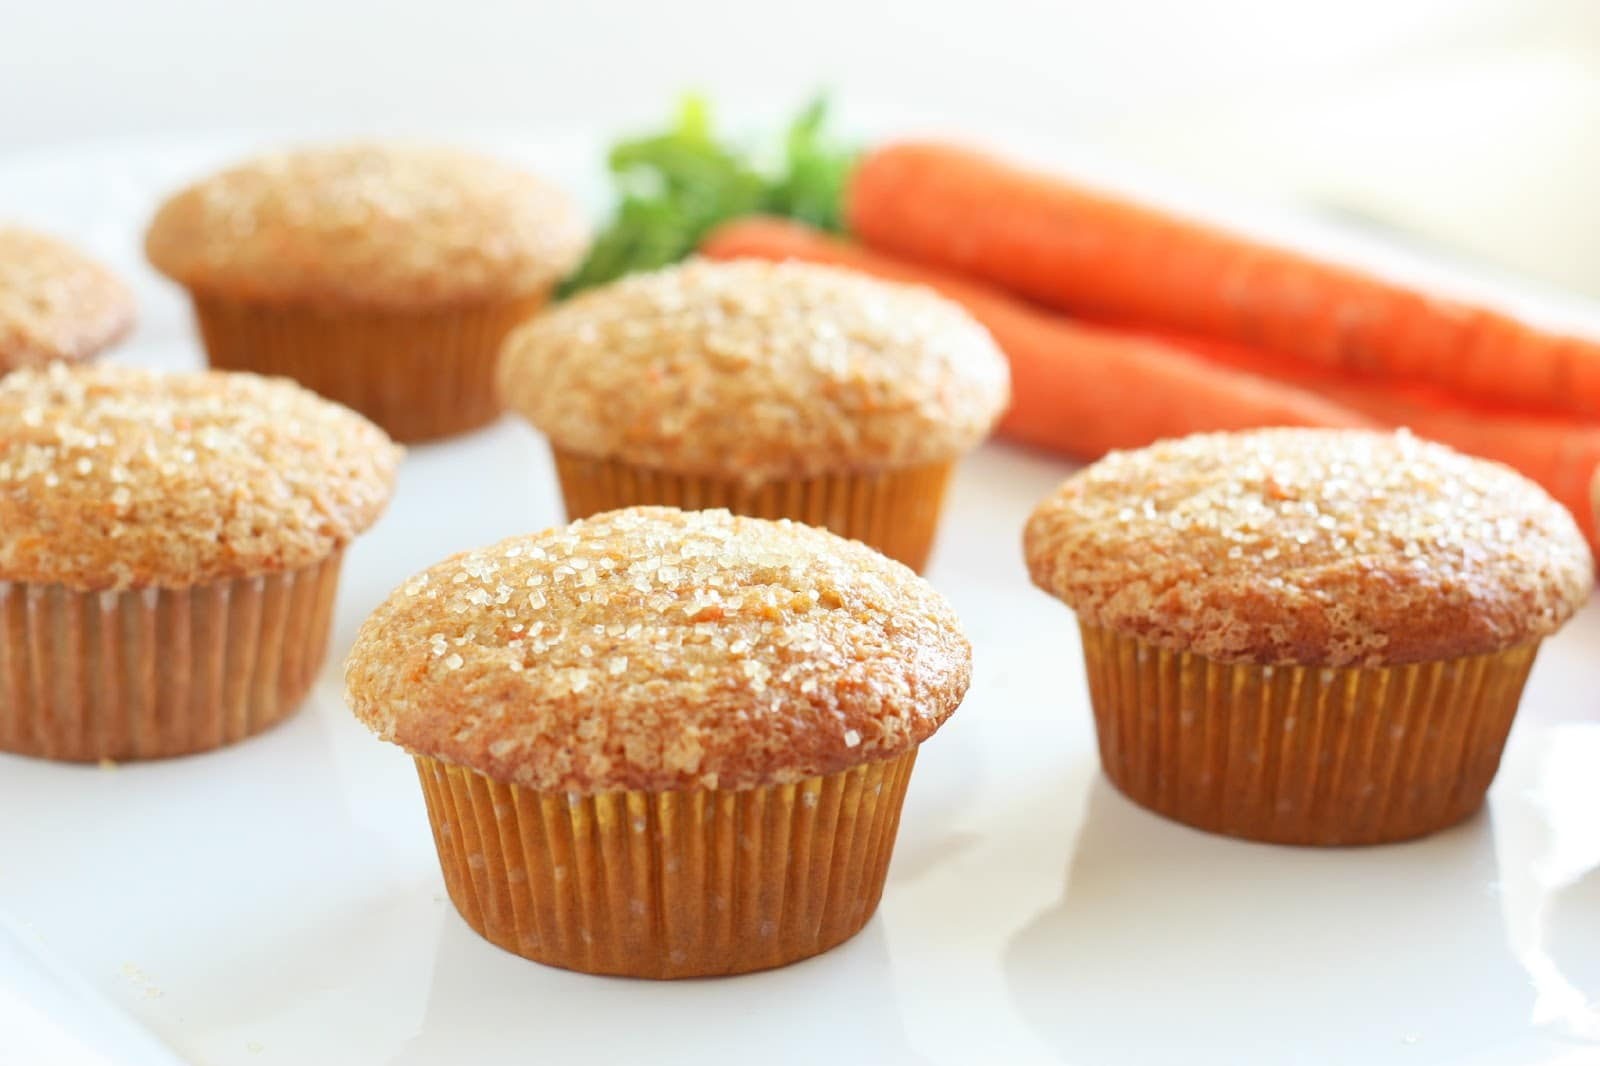 Easy Carrot Cake Muffins Without Oil